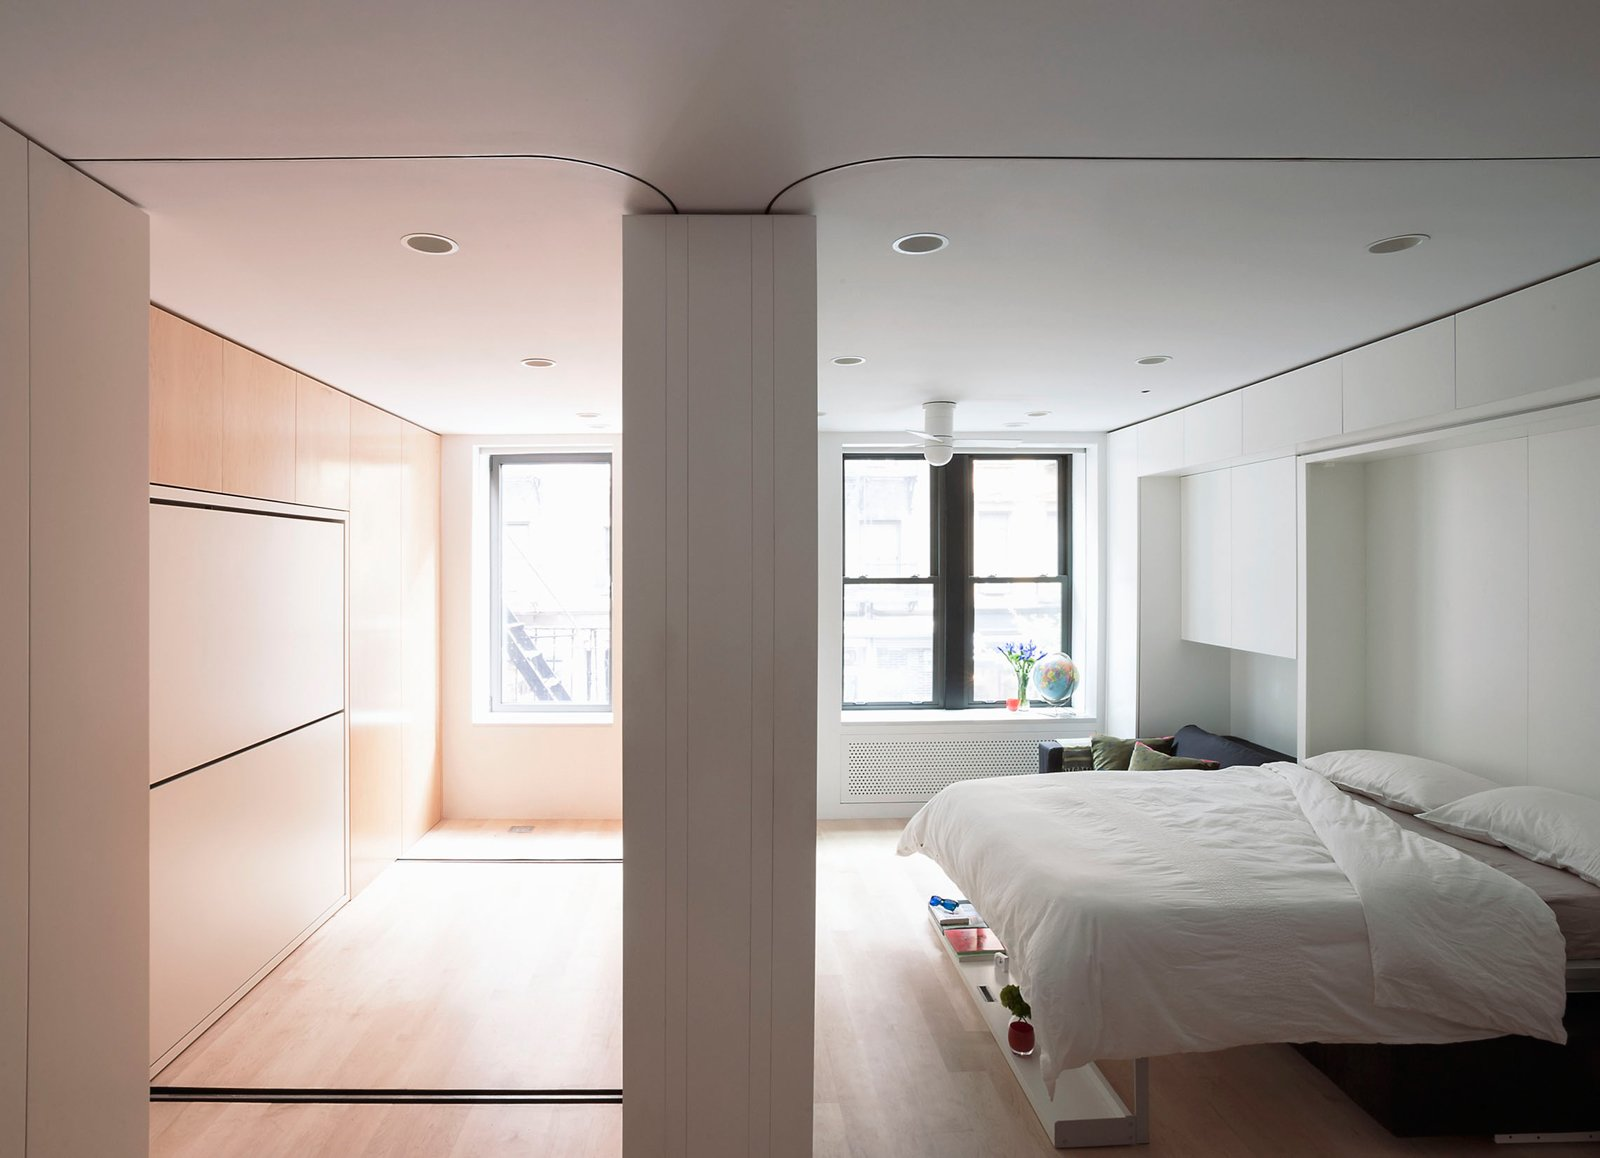 The moving wall opens up a second room, which features bike storage, a second office space, and can be converted to the guest bedroom.